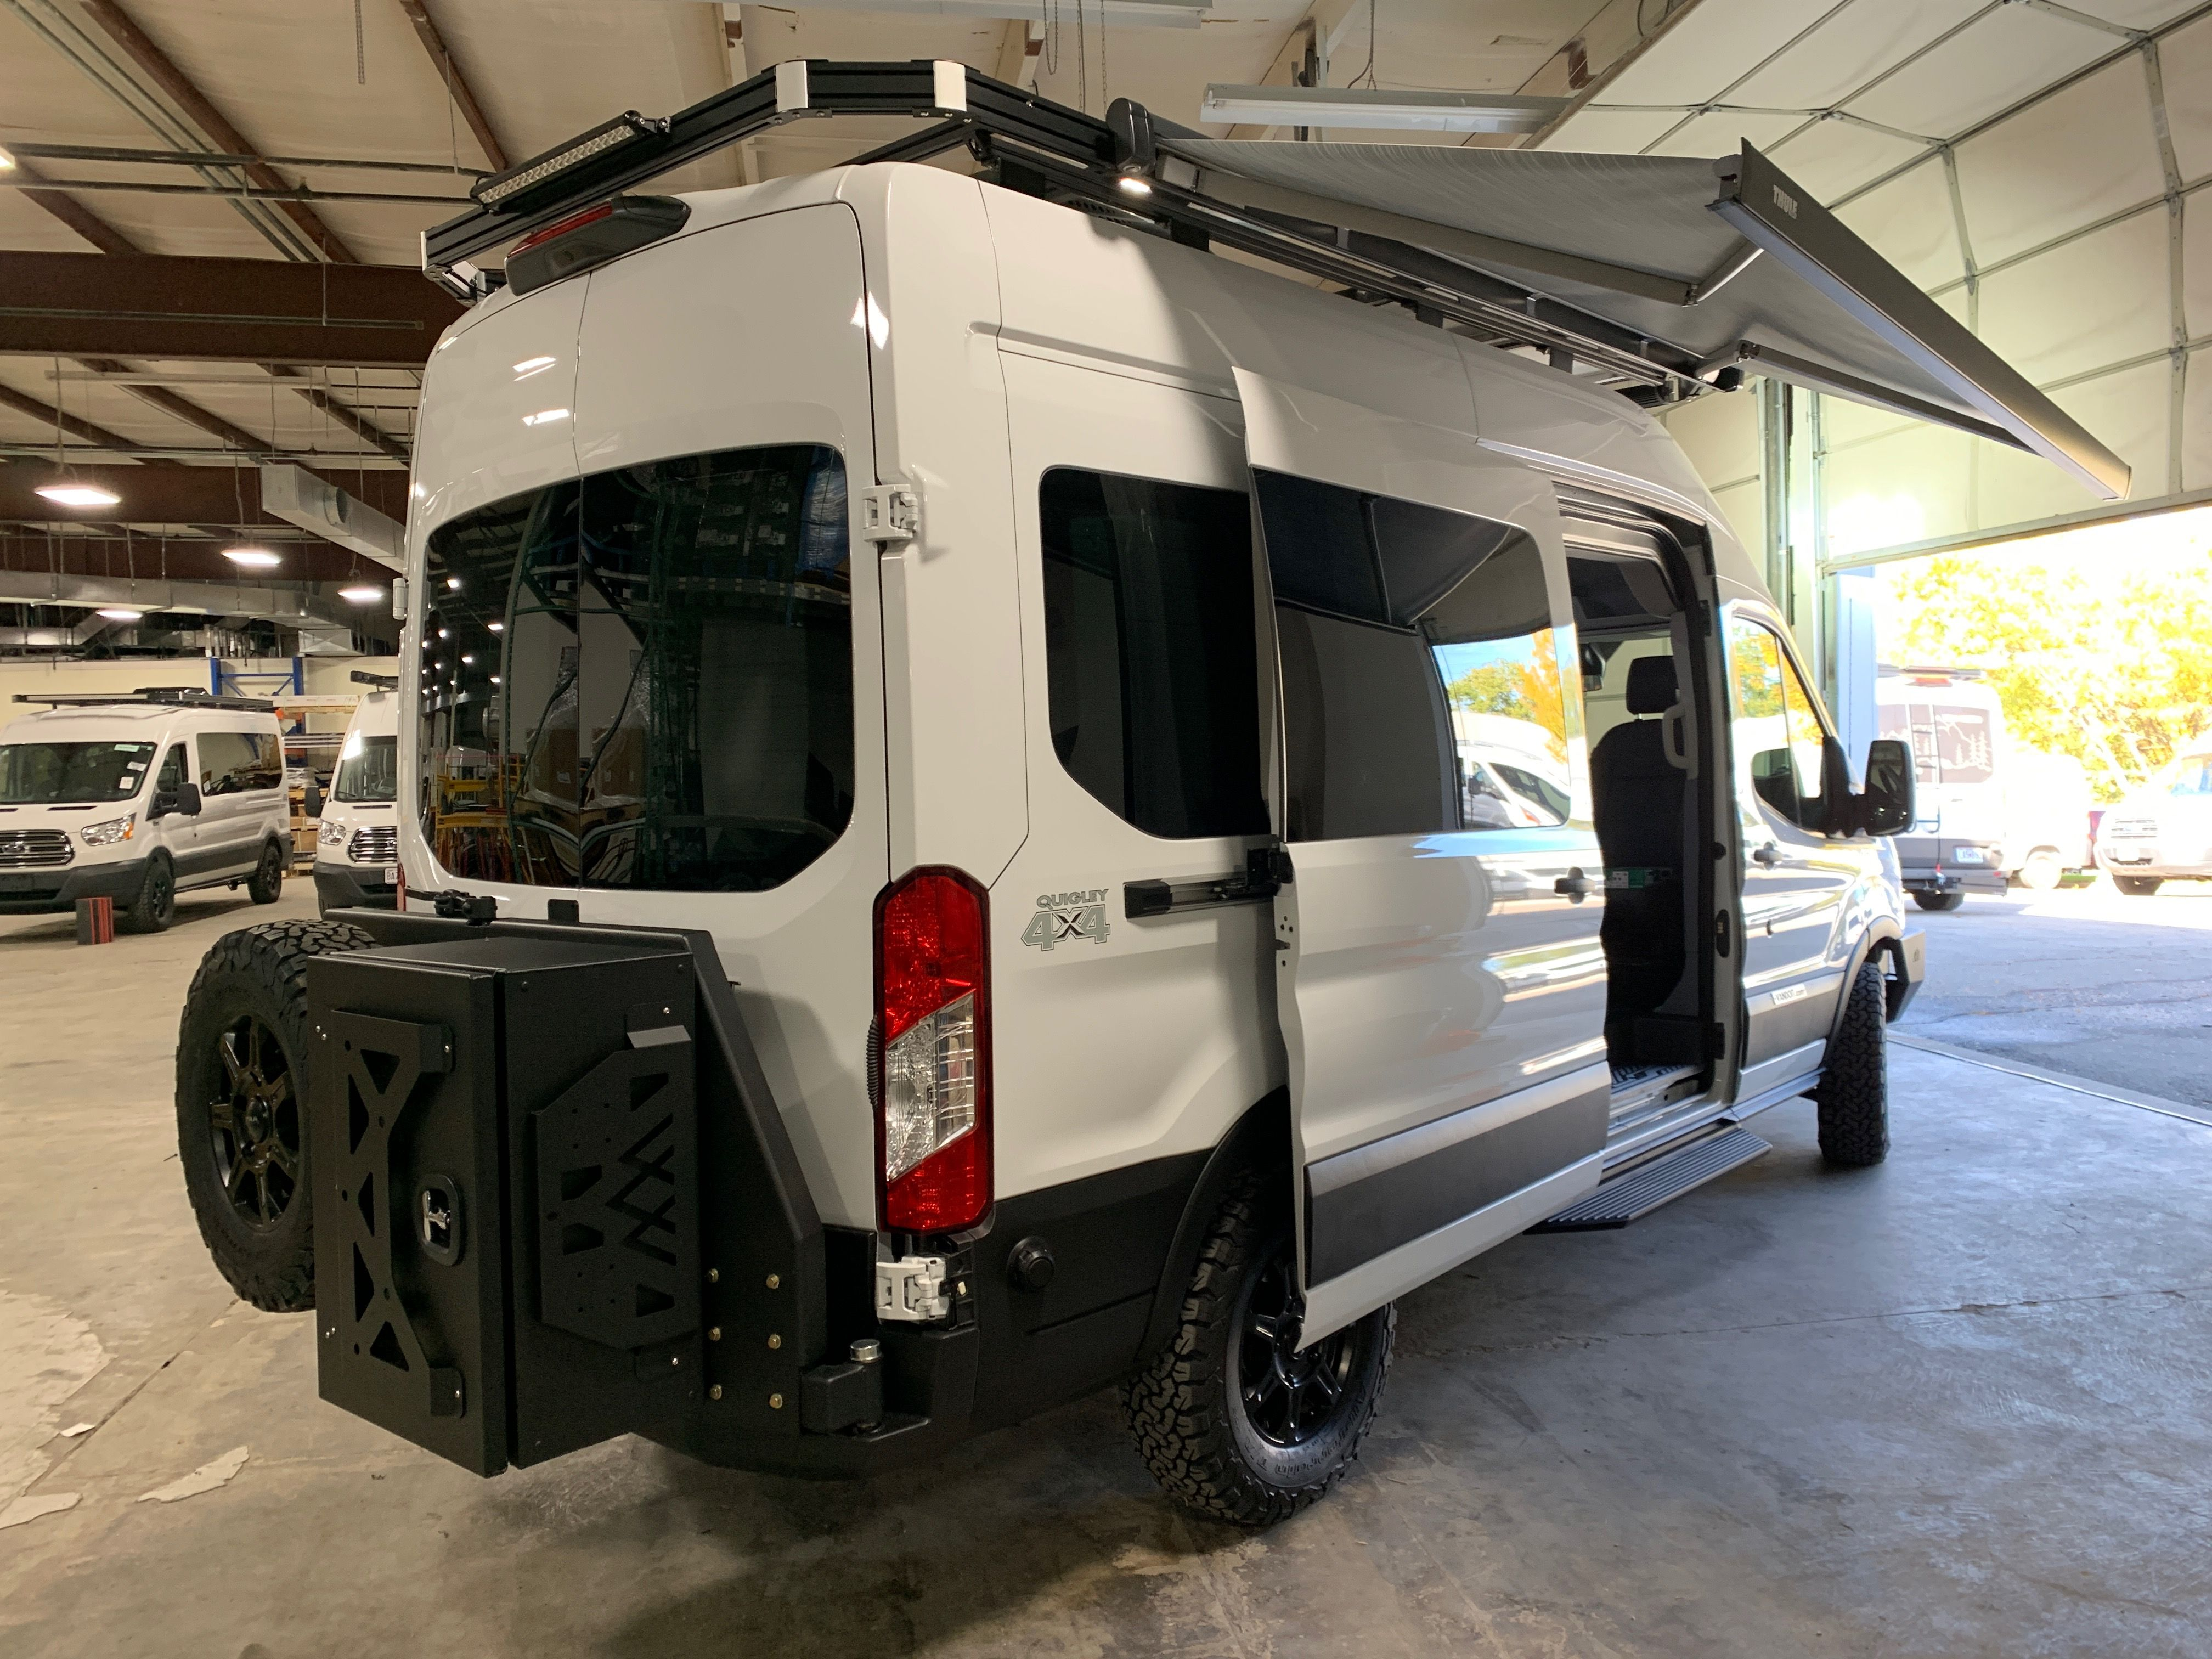 Vandoit Campervan With A Backwoodbumper With Tire Swingarm And